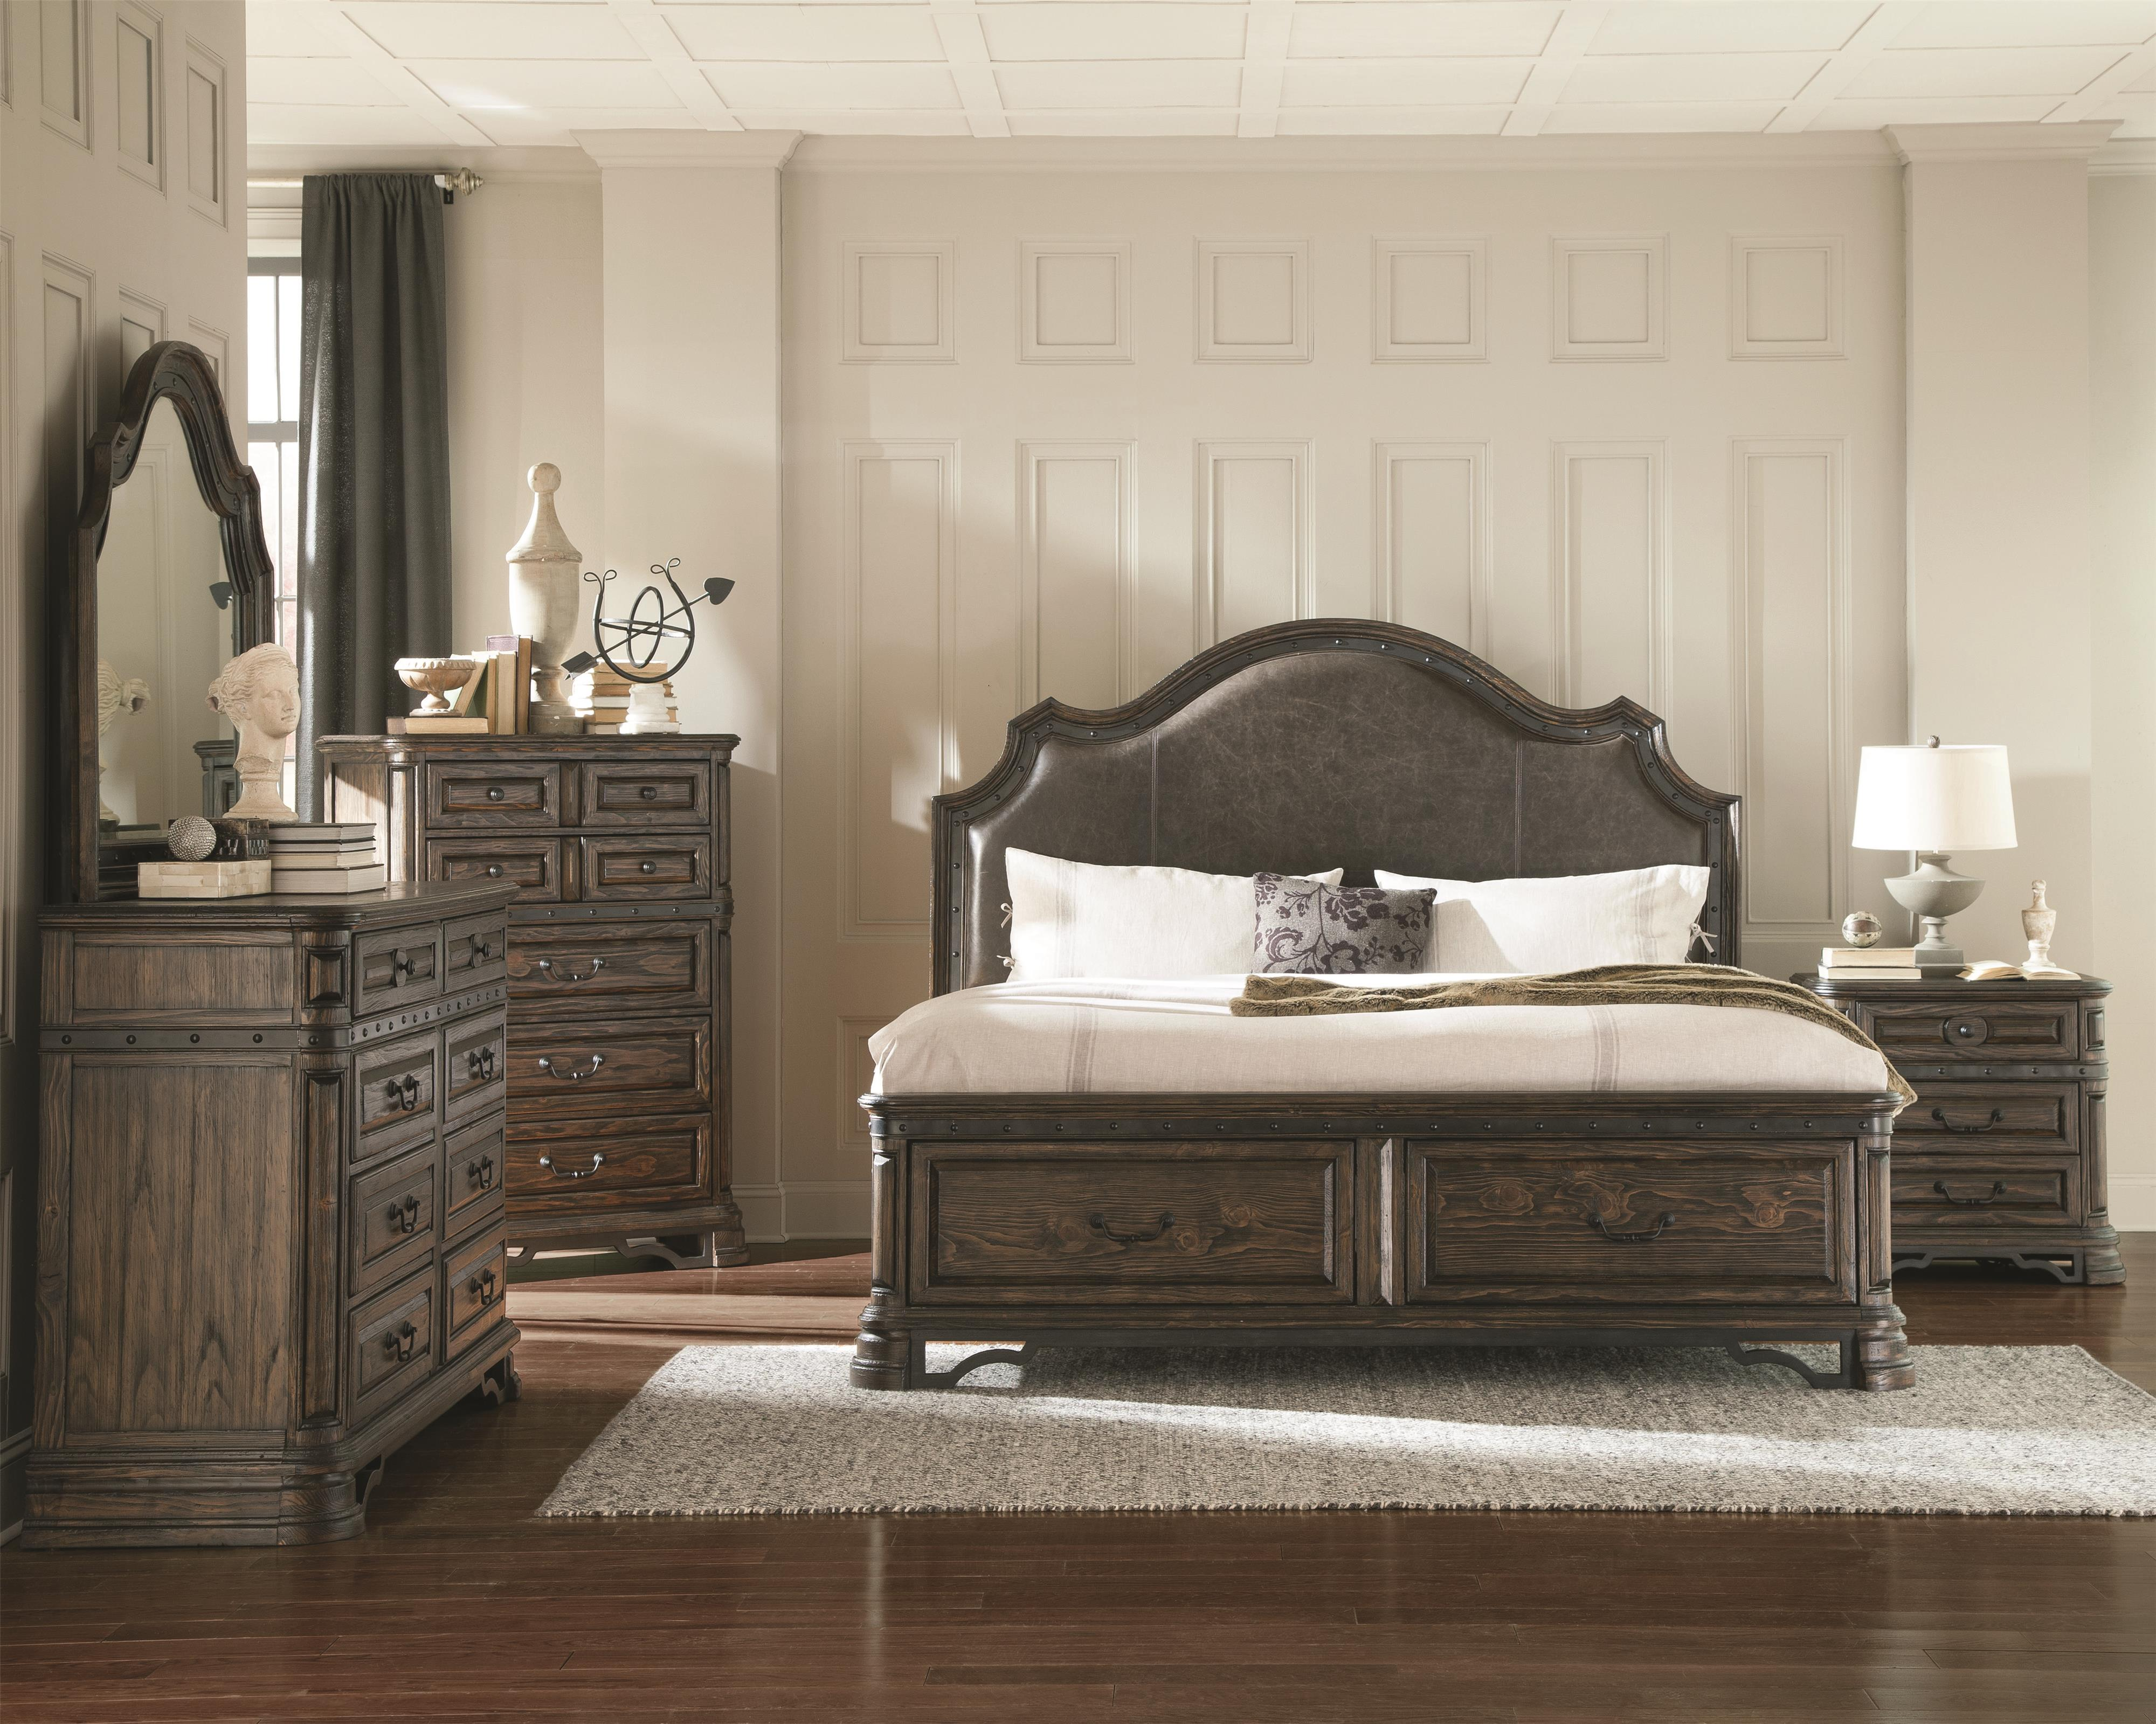 Merveilleux Antique Formal Look Romantic Bedroom 4pc Set Dark Brown Queen Size Bed  Upholstered HB Storage FB Bed Dresser Mirror Nightstand